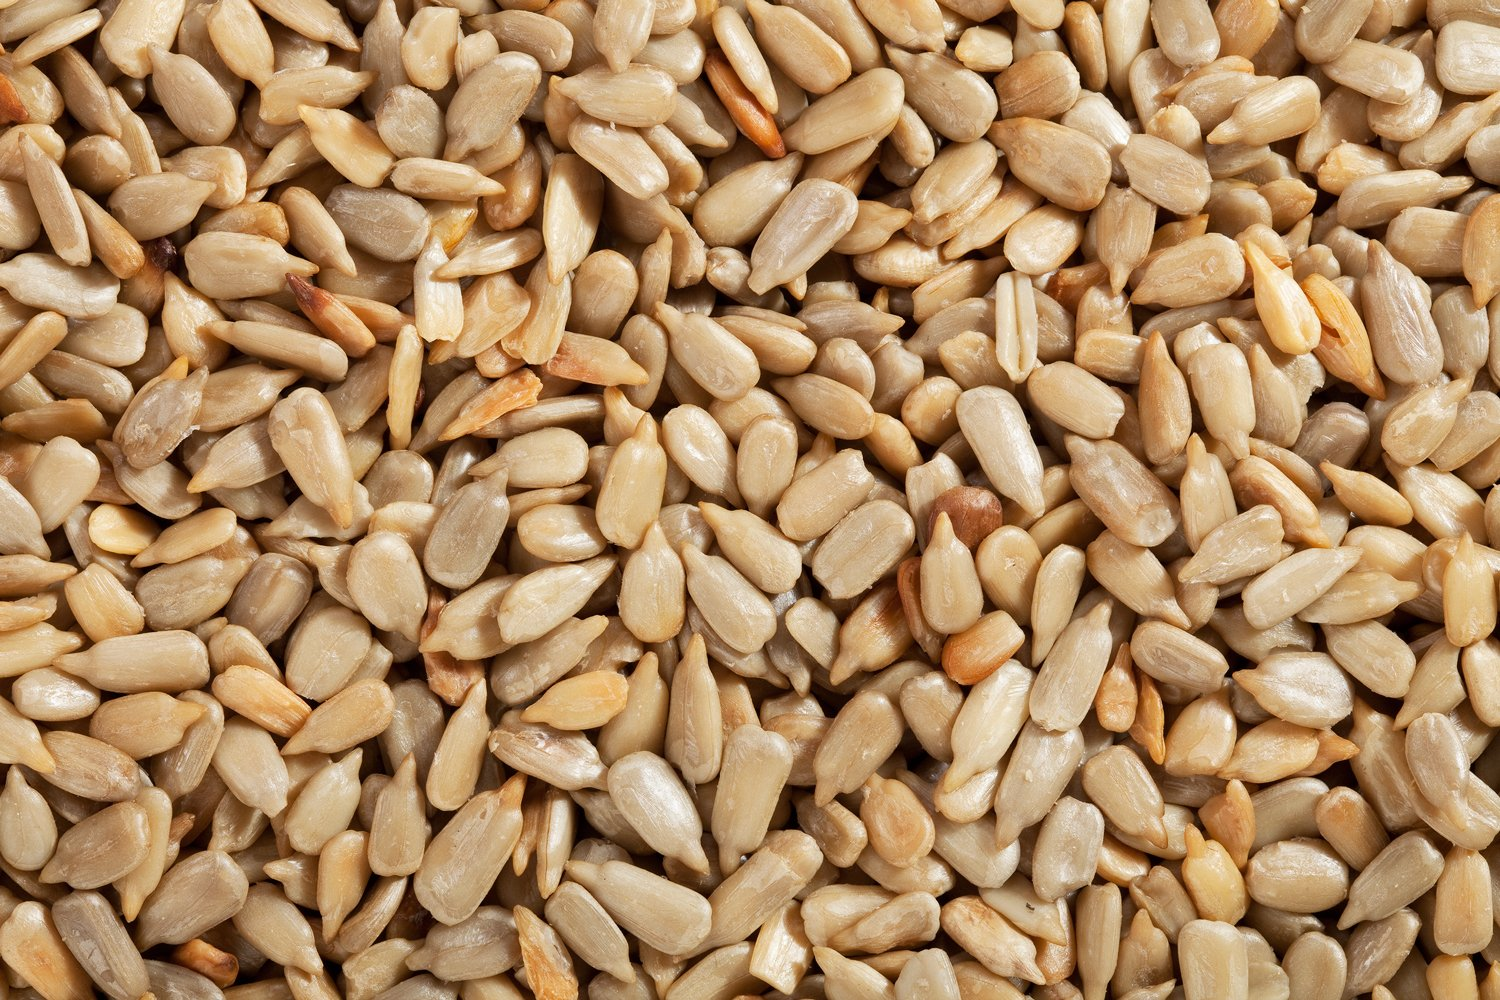 How are sunflower seeds shelled